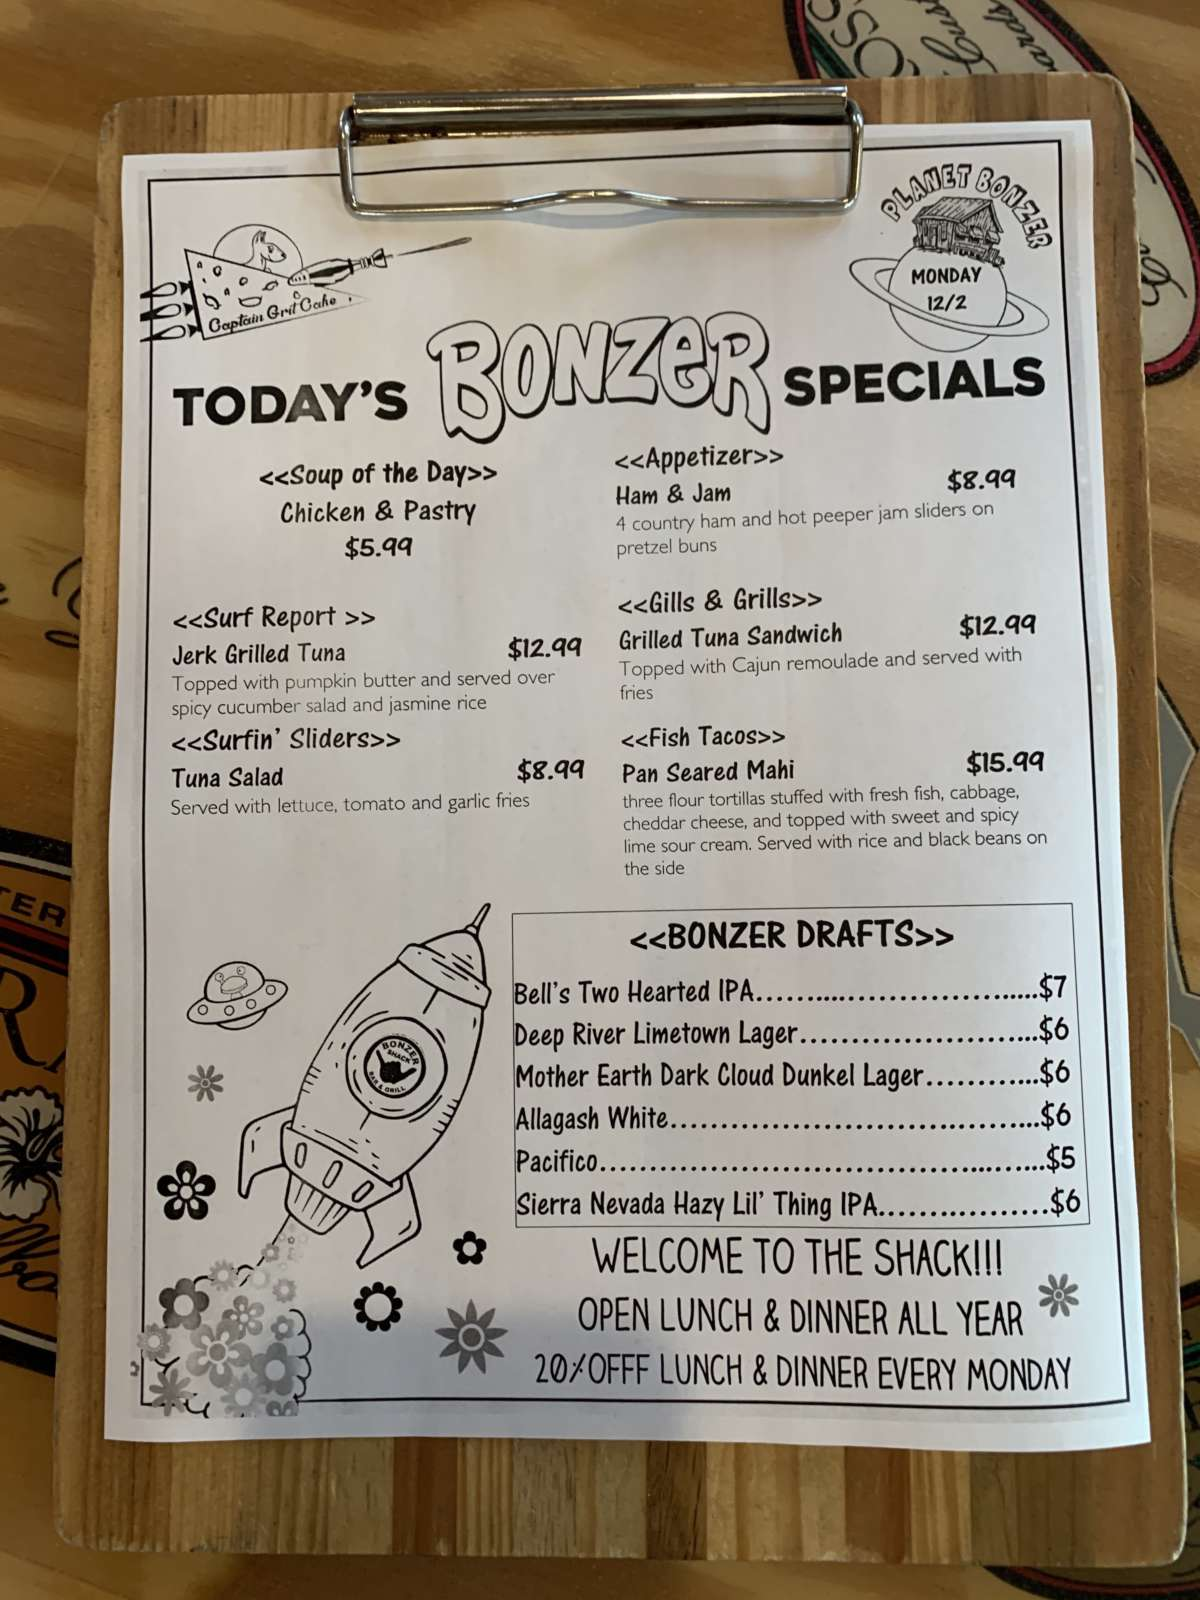 LUNCH SPECIALS 12/2